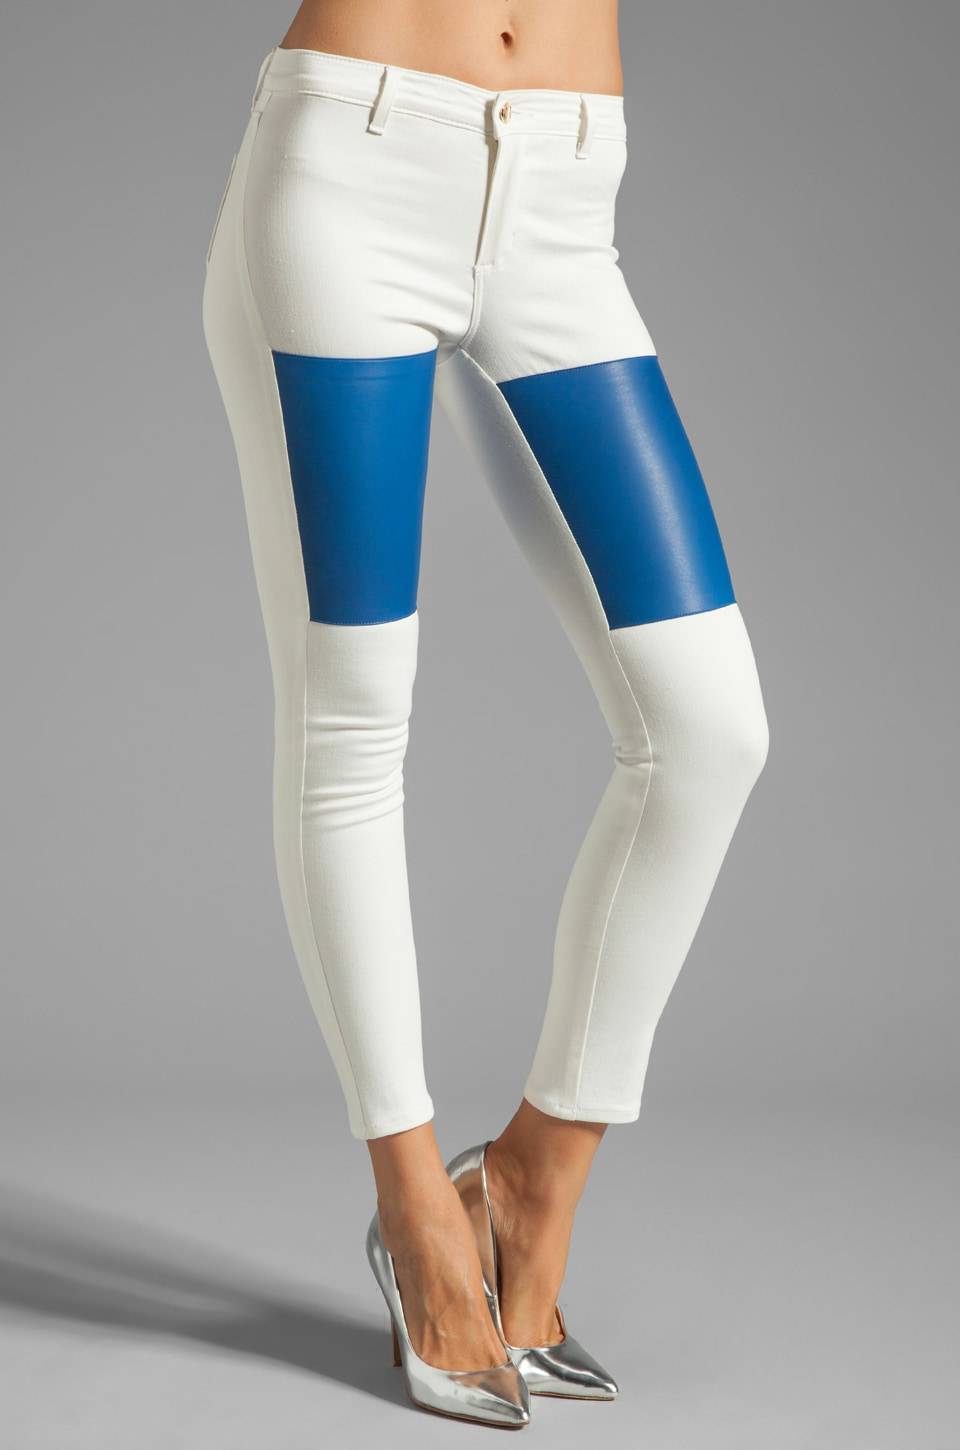 MAX FOWLES Leather Patch Jean in Blue/White